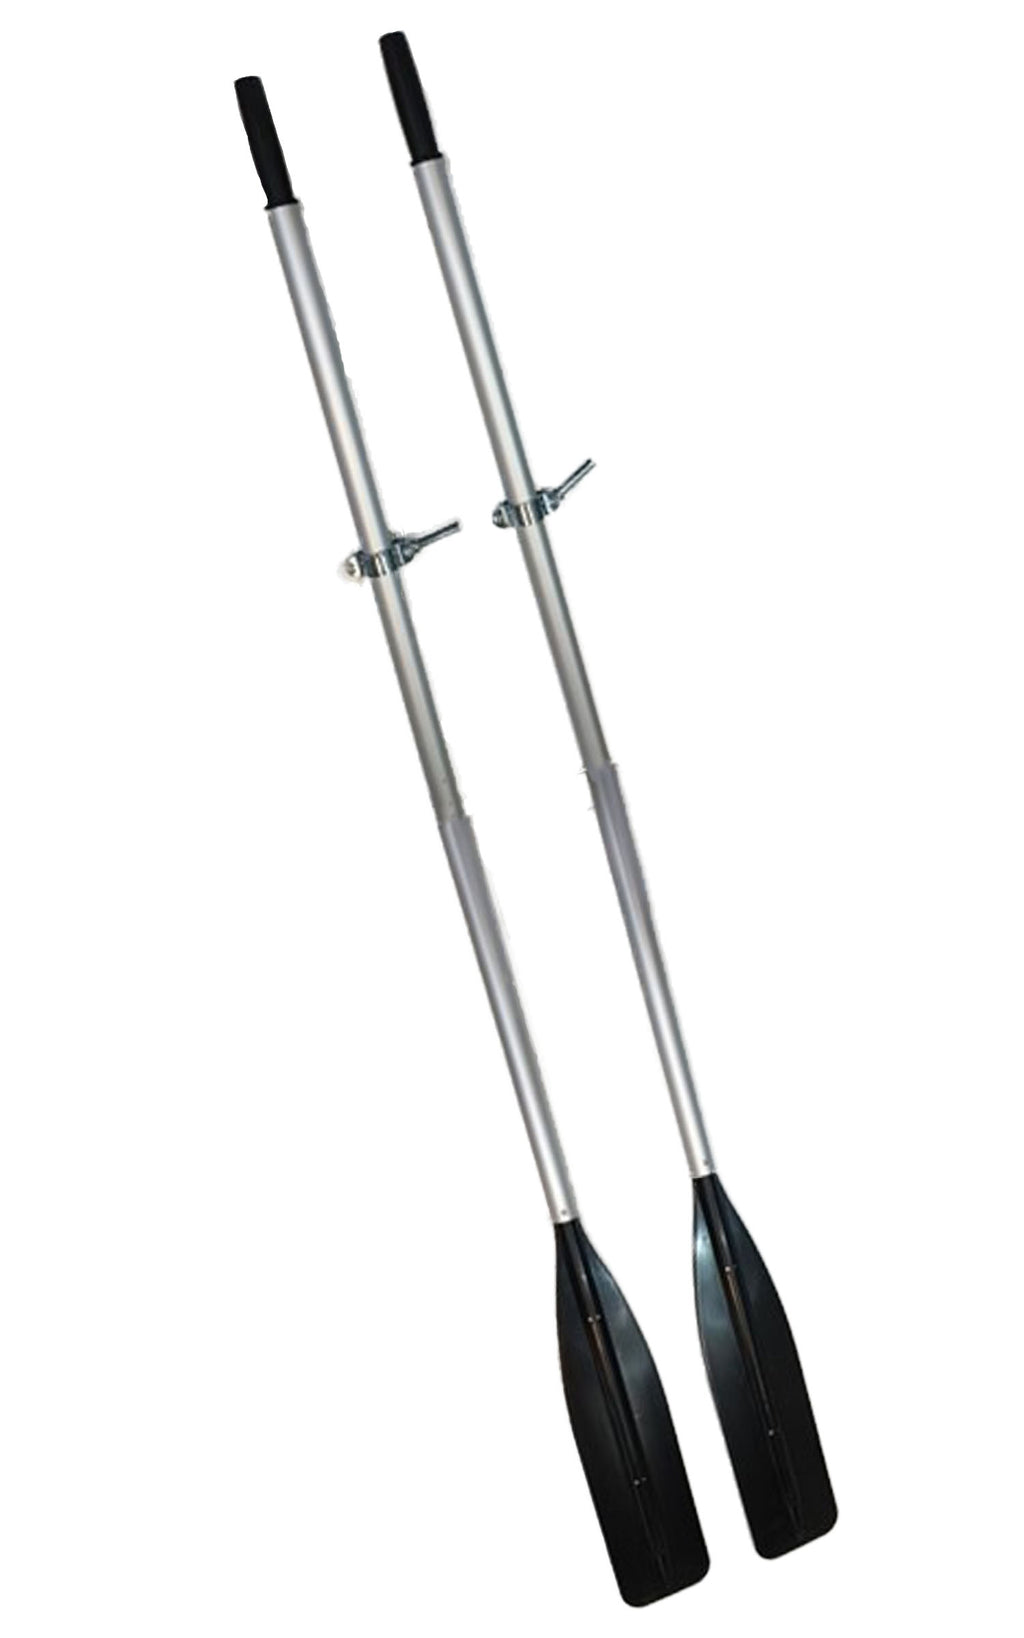 pair of aluminum oars with black paddles